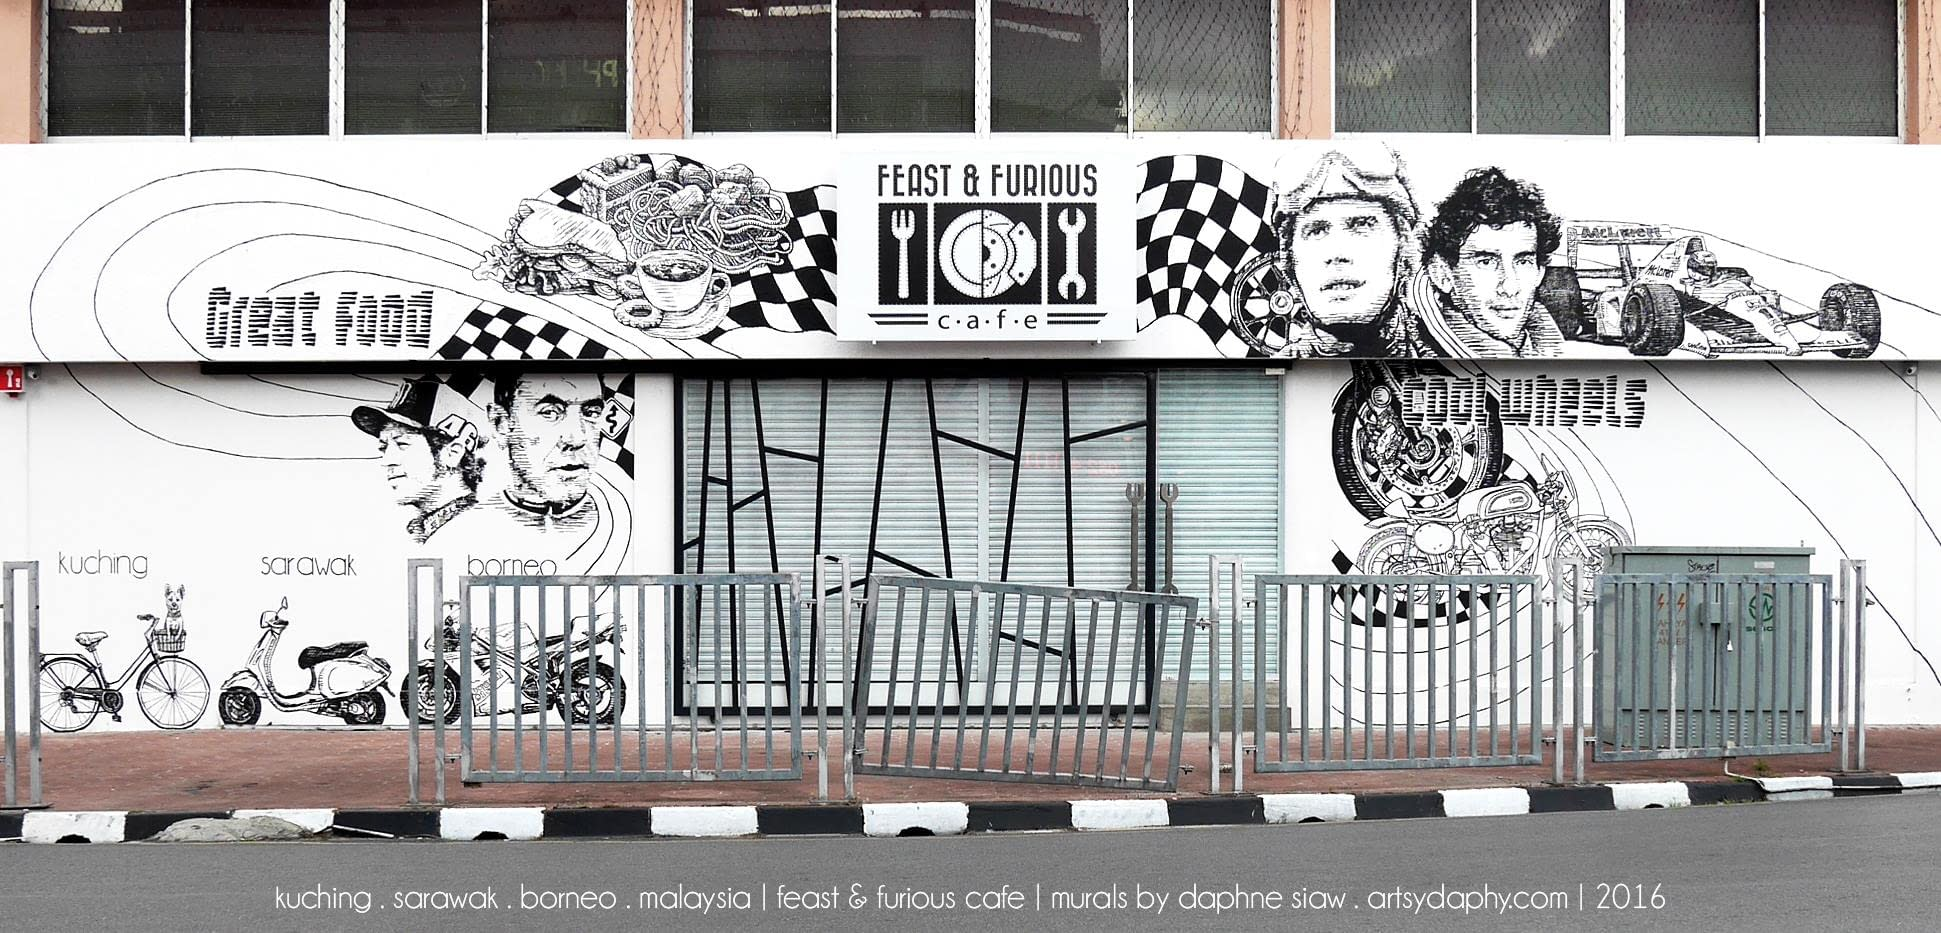 iconic line art mural at feast and furious cafe kuching features artistic line art bikes and motorsports legends